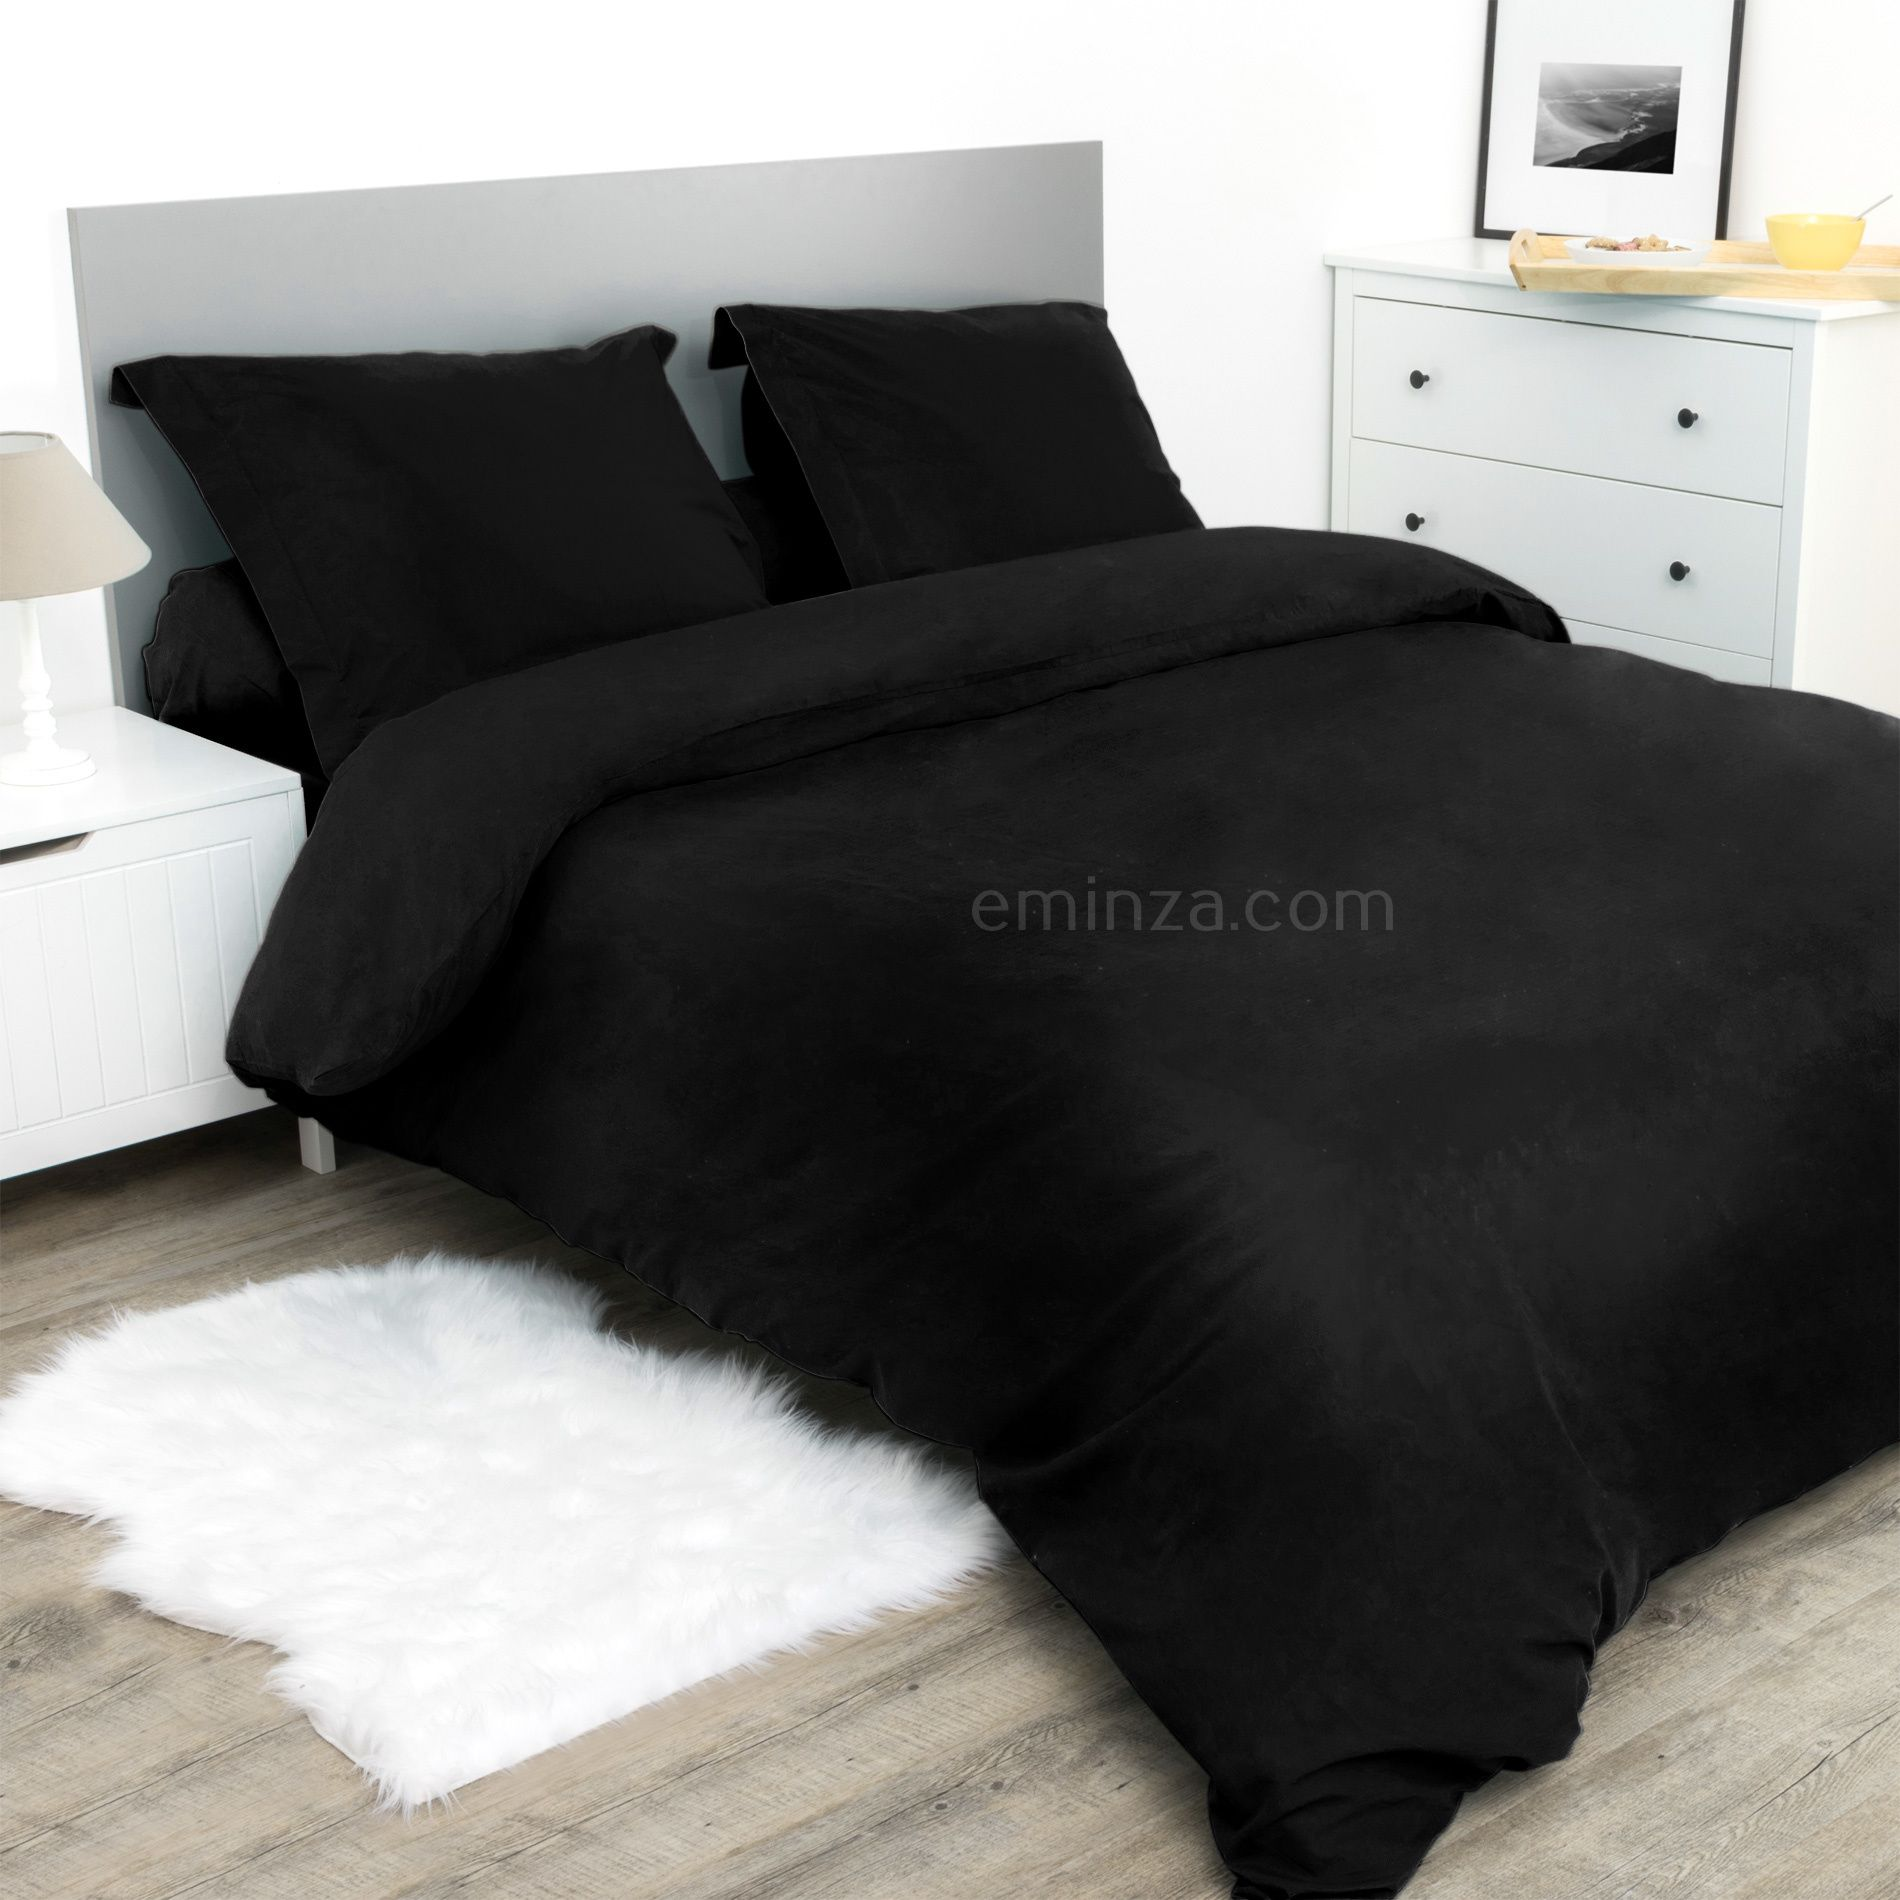 housse de couette 260 cm confort noir housse de couette eminza. Black Bedroom Furniture Sets. Home Design Ideas